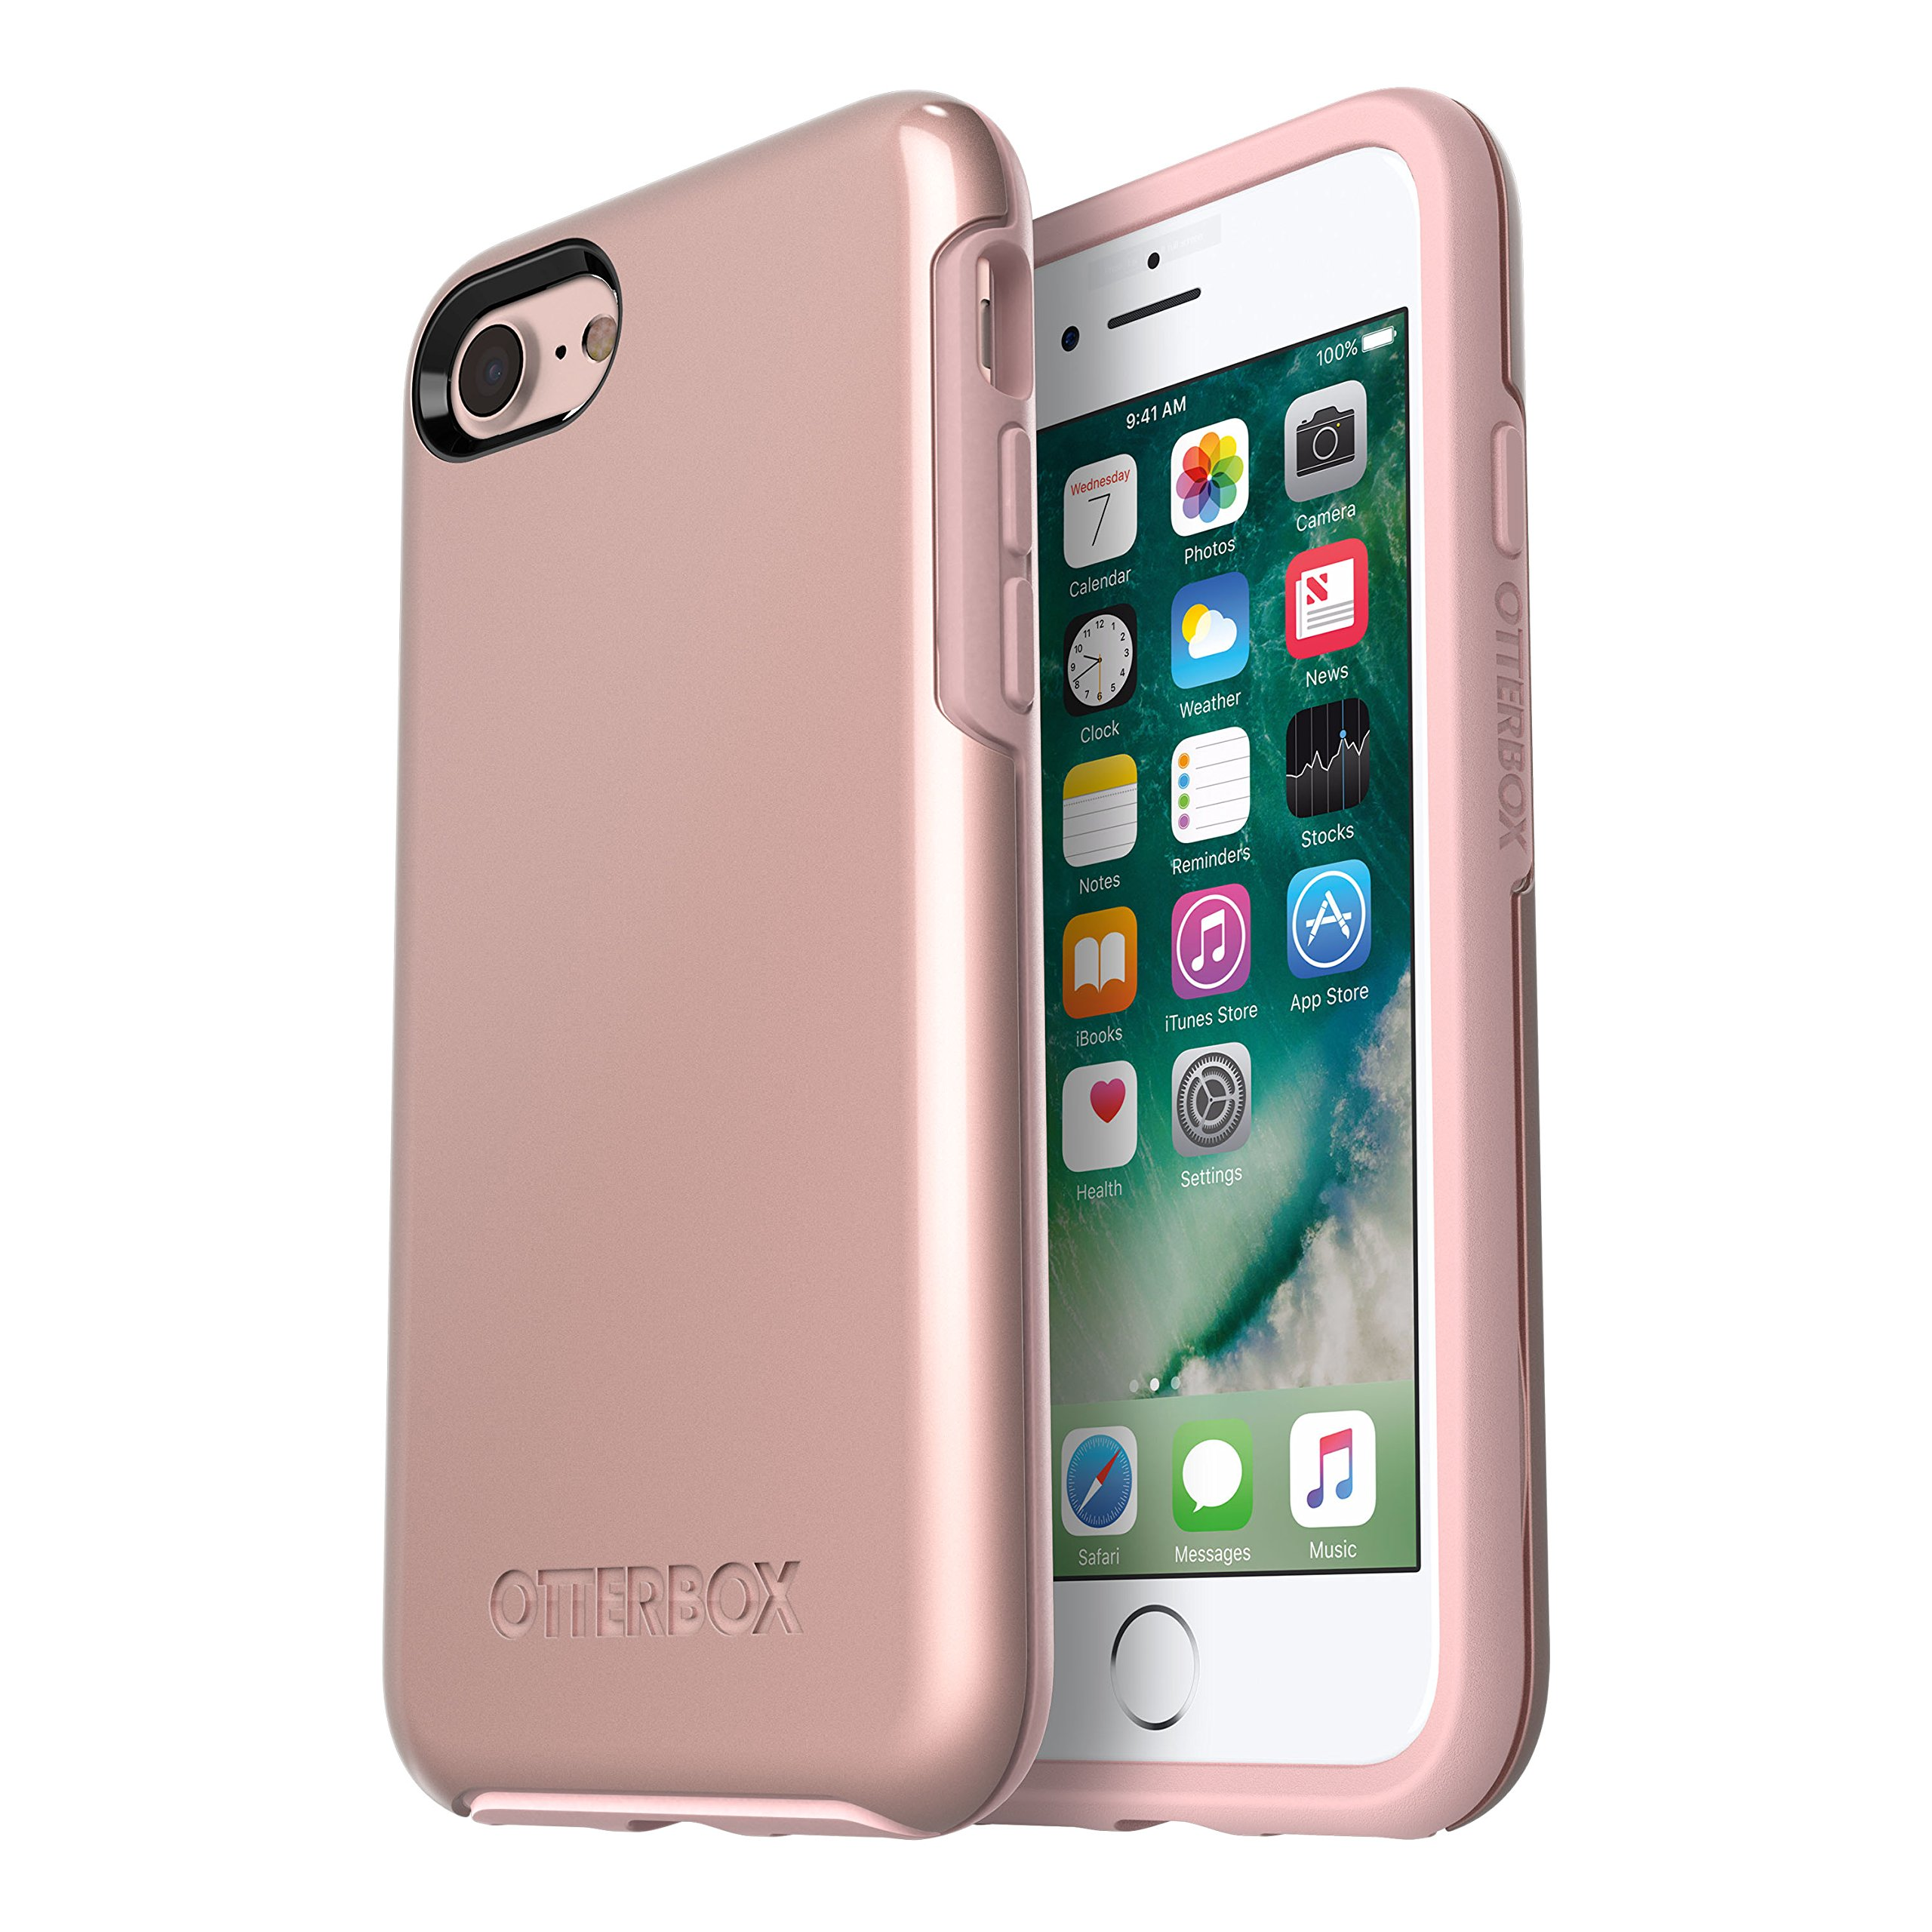 OtterBox SYMMETRY SERIES Case for iPhone SE (2nd gen - 2020) and iPhone 8/7 (NOT PLUS) - Retail Packaging - ROSE GOLD (PALE PINK/ROSE GOLD GRAPHIC)